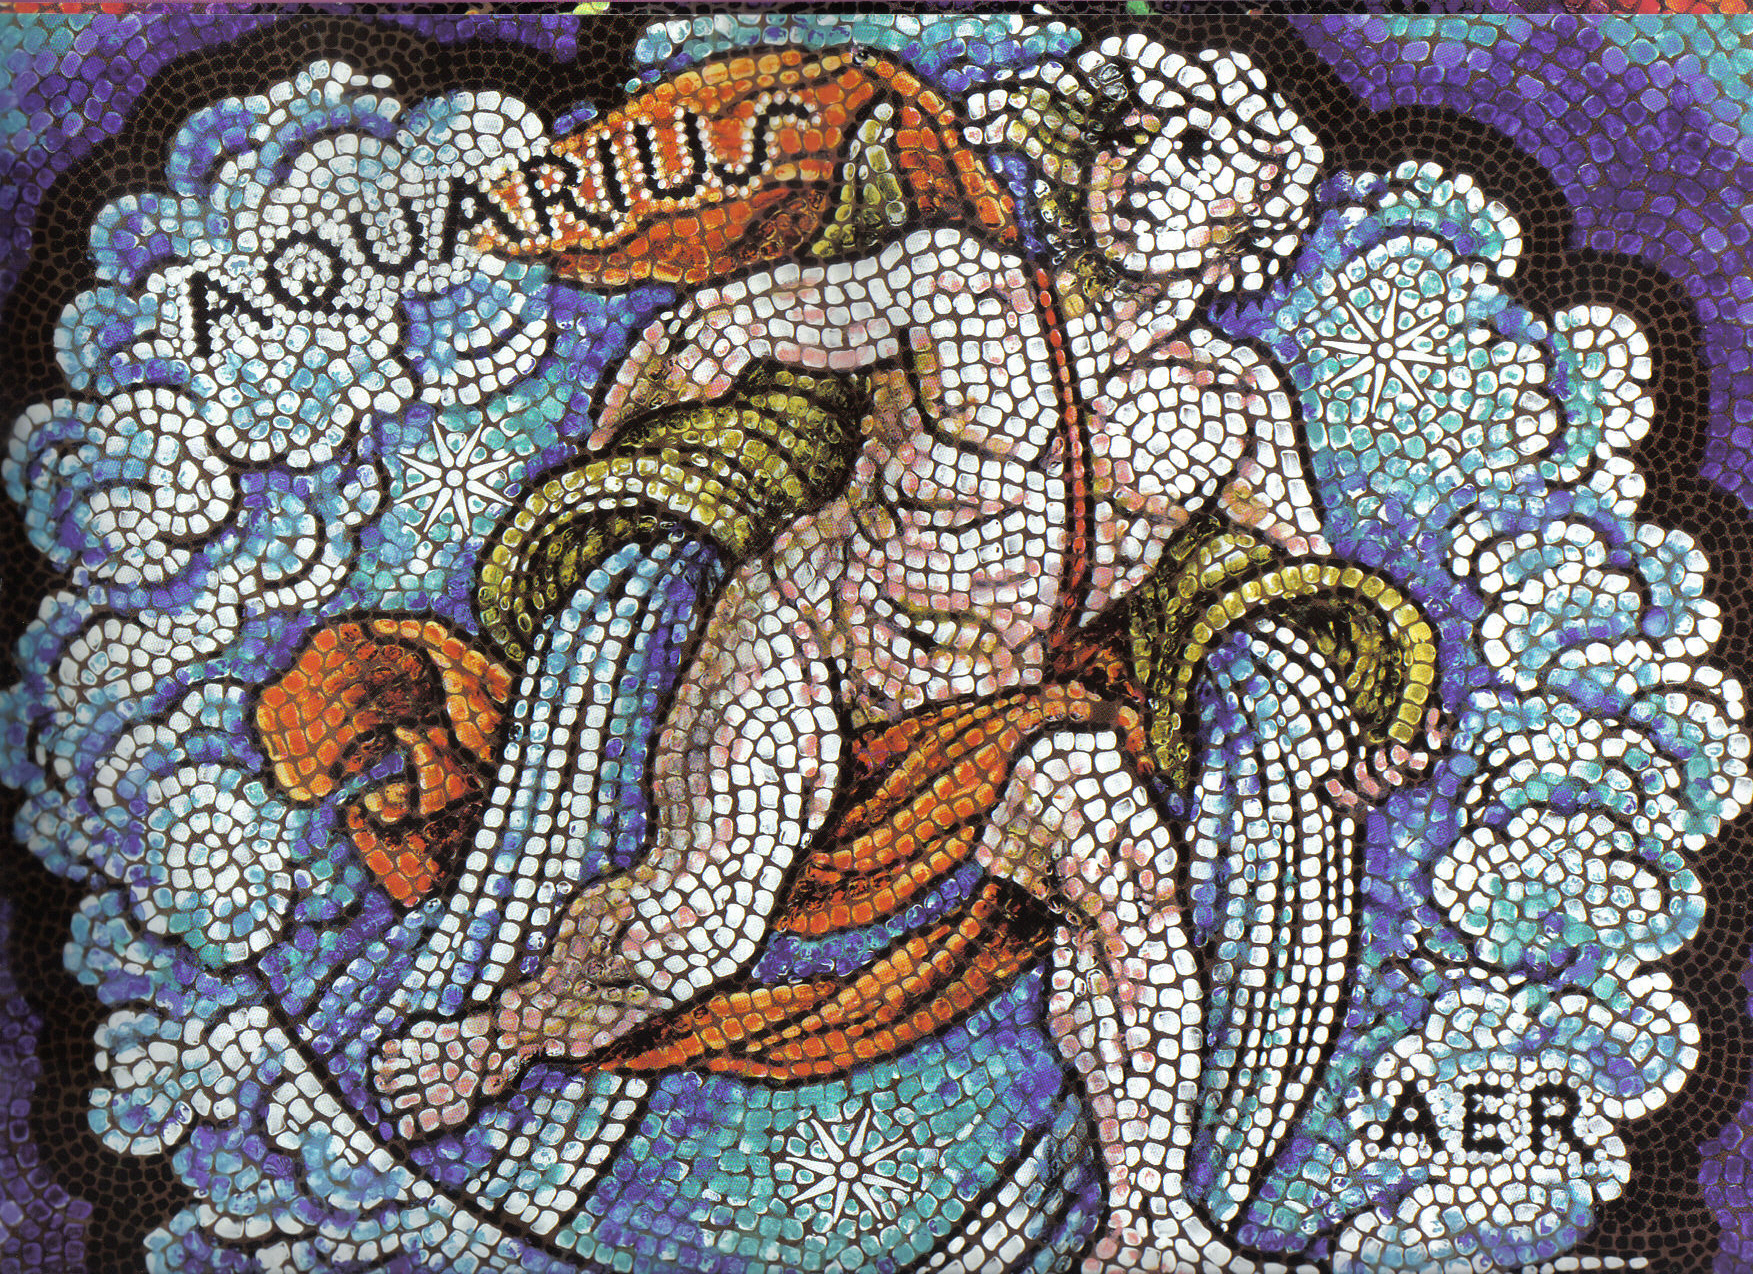 Aquarius-astrology-15139356-1753-1274